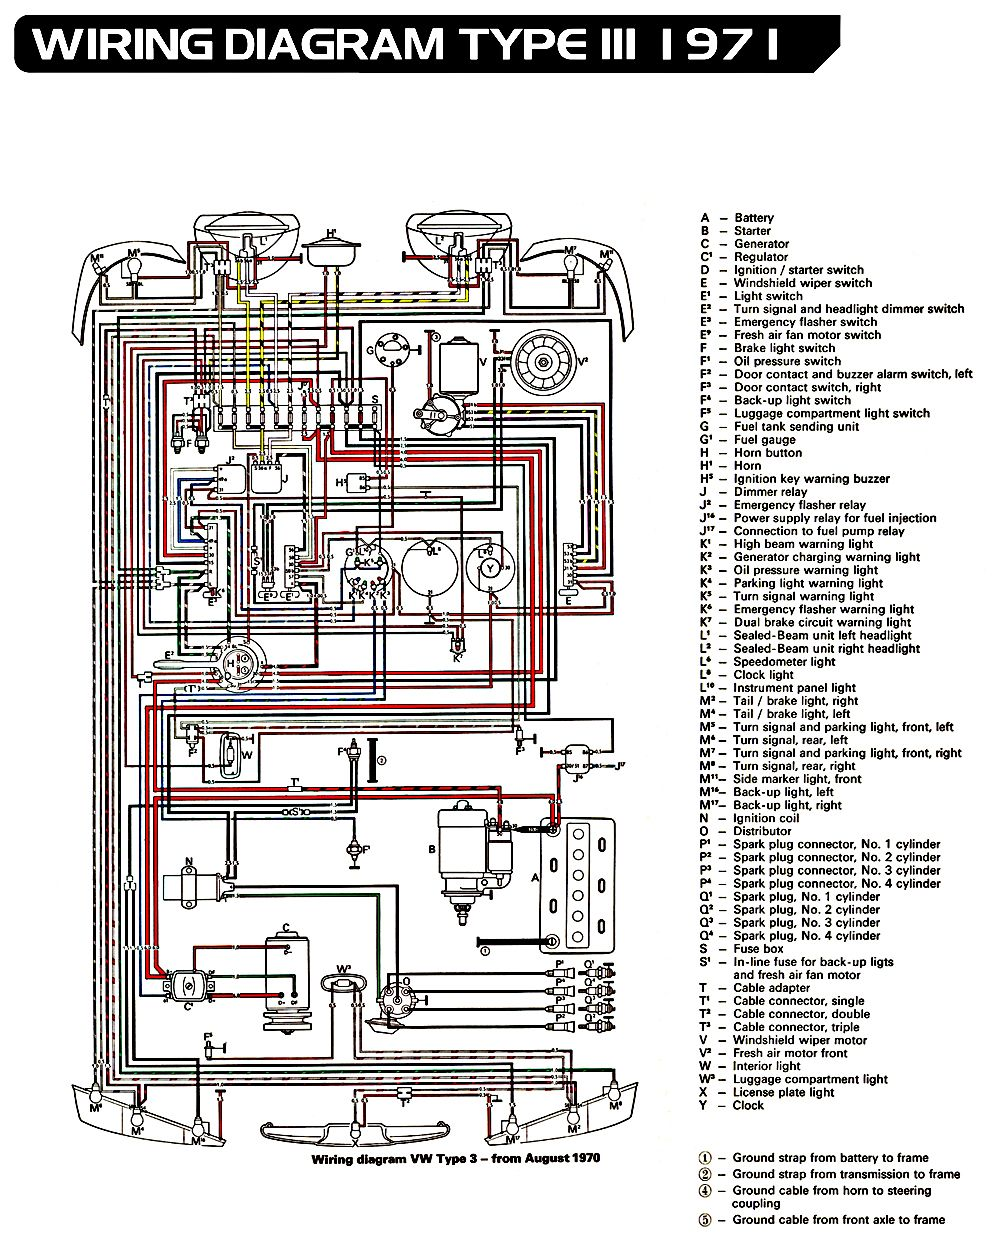 e19fd202920e69647b5c593f54755423 1971 type 3 vw wiring diagram so simple compared to a modern ecu 1968 vw type 3 wiring diagram at gsmx.co